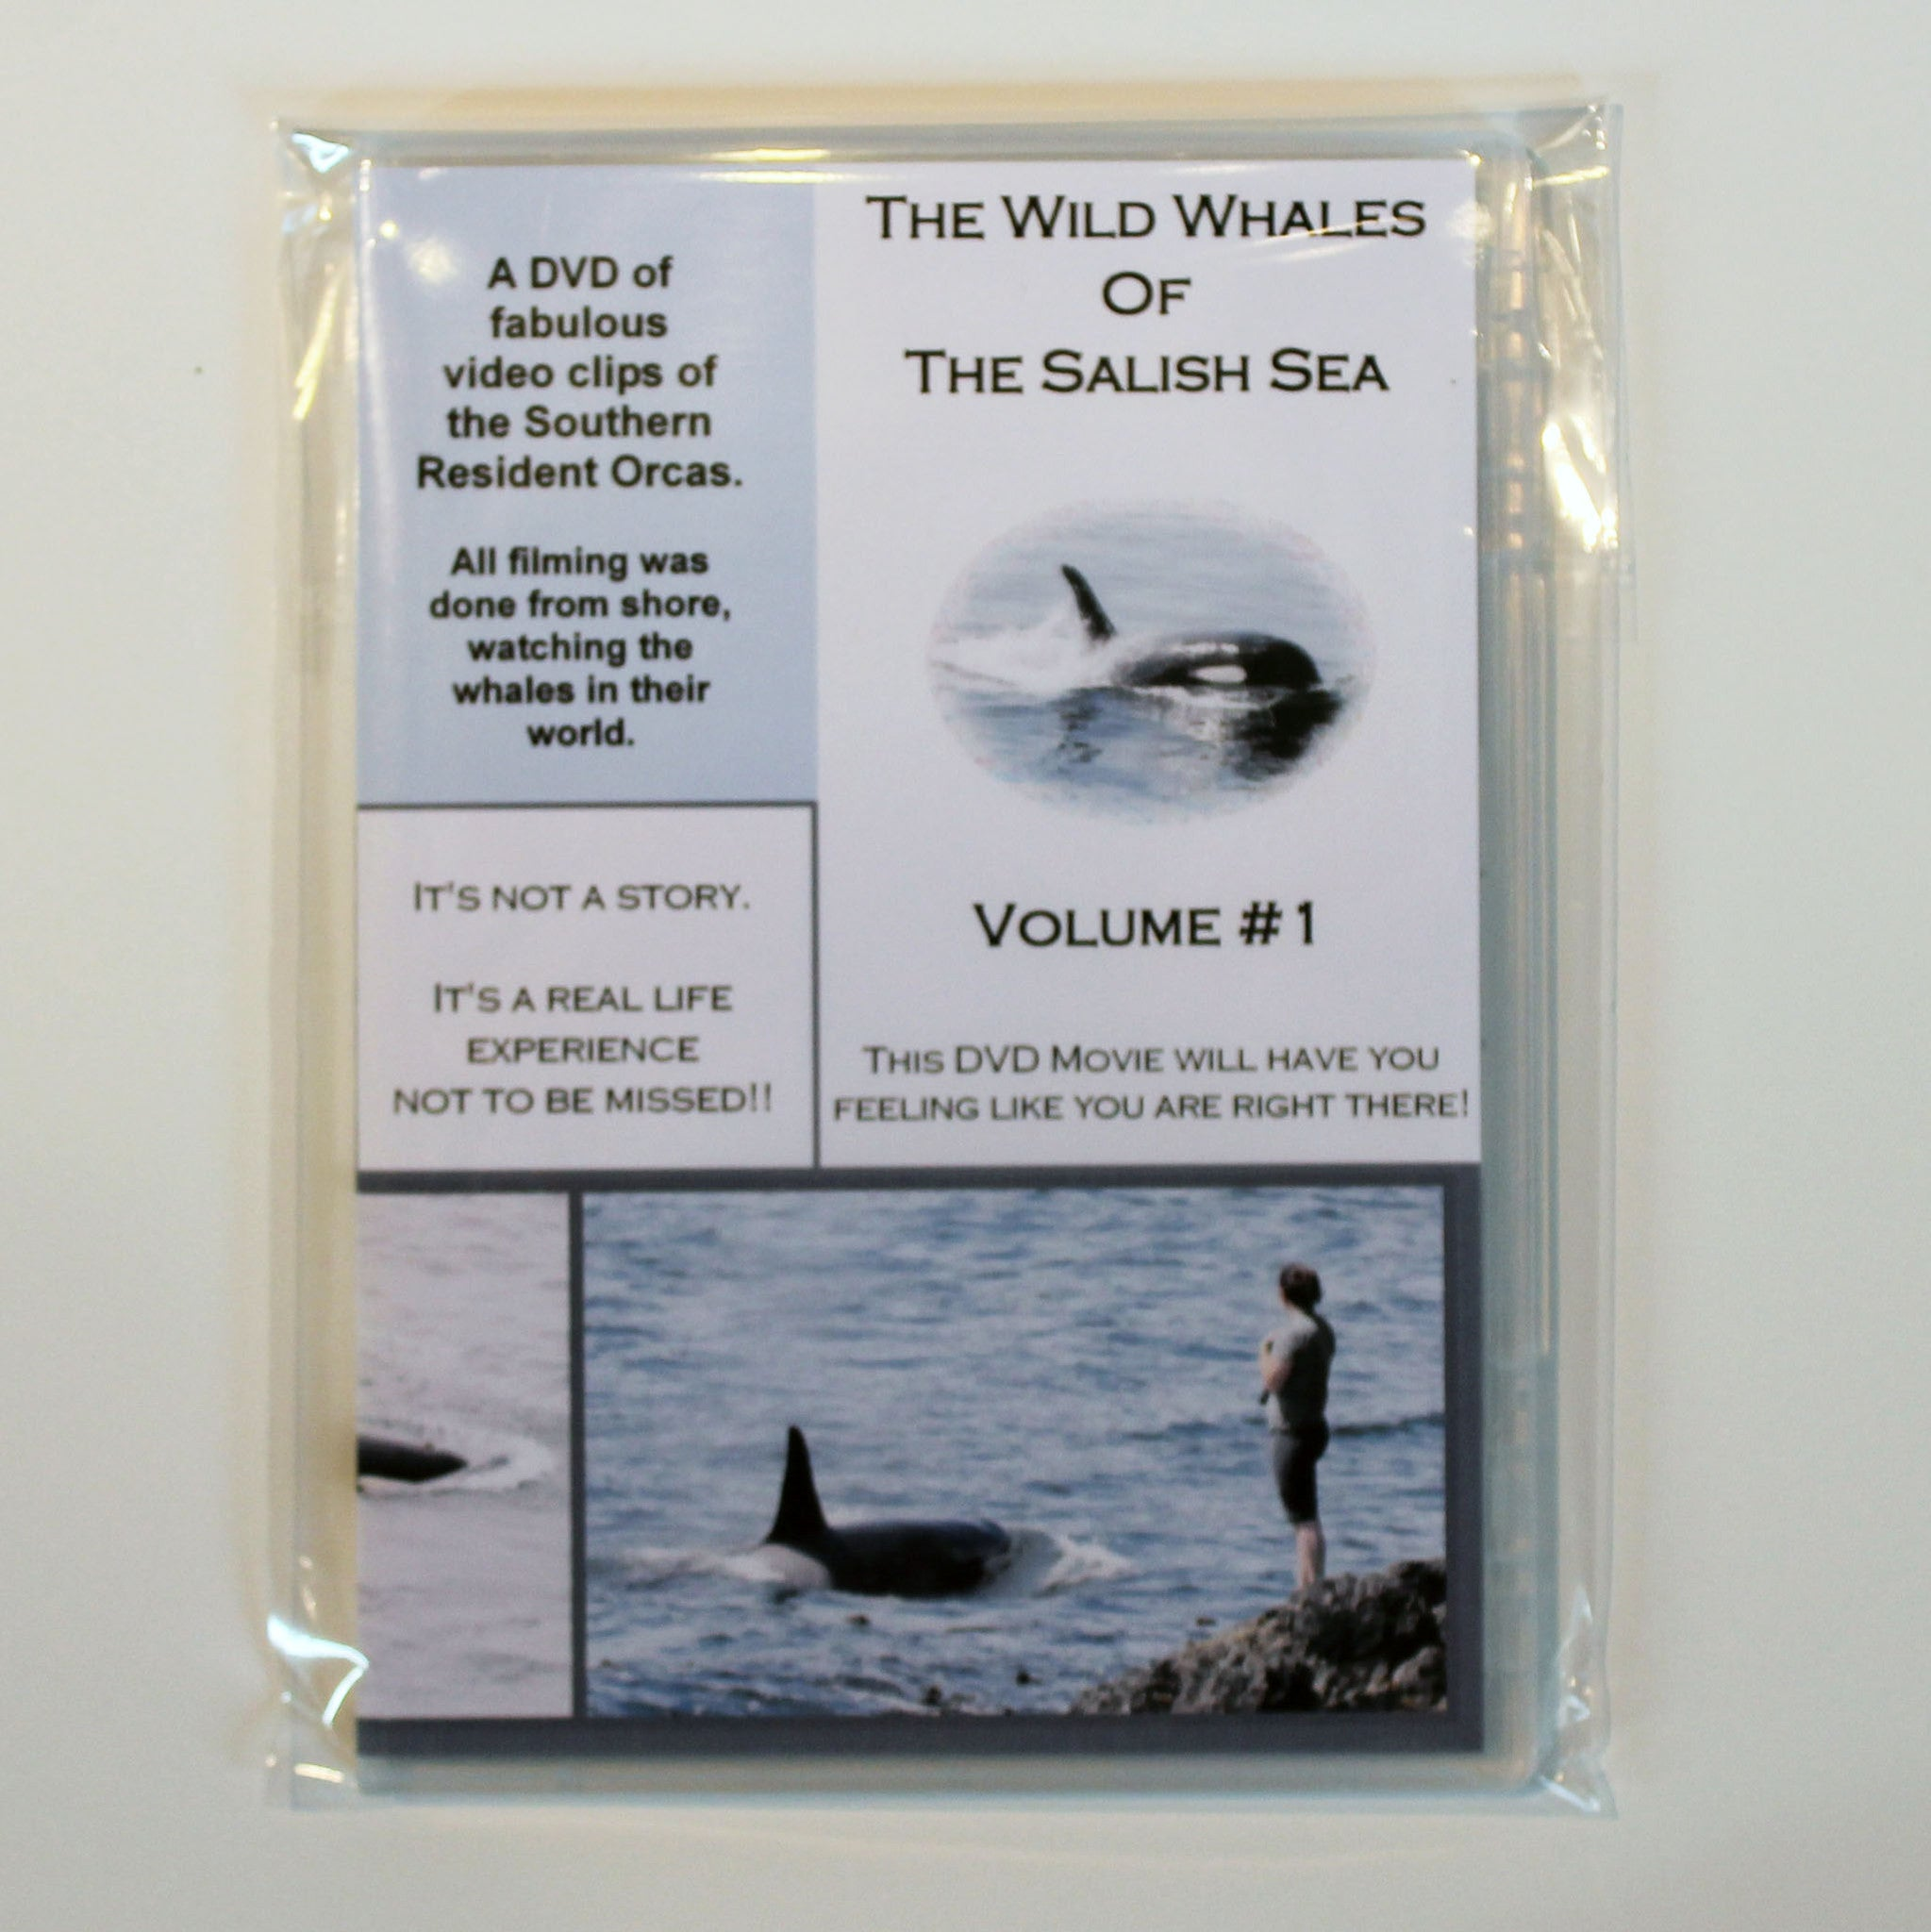 The Wild Whales Of The Salish Sea DVD Volume 1